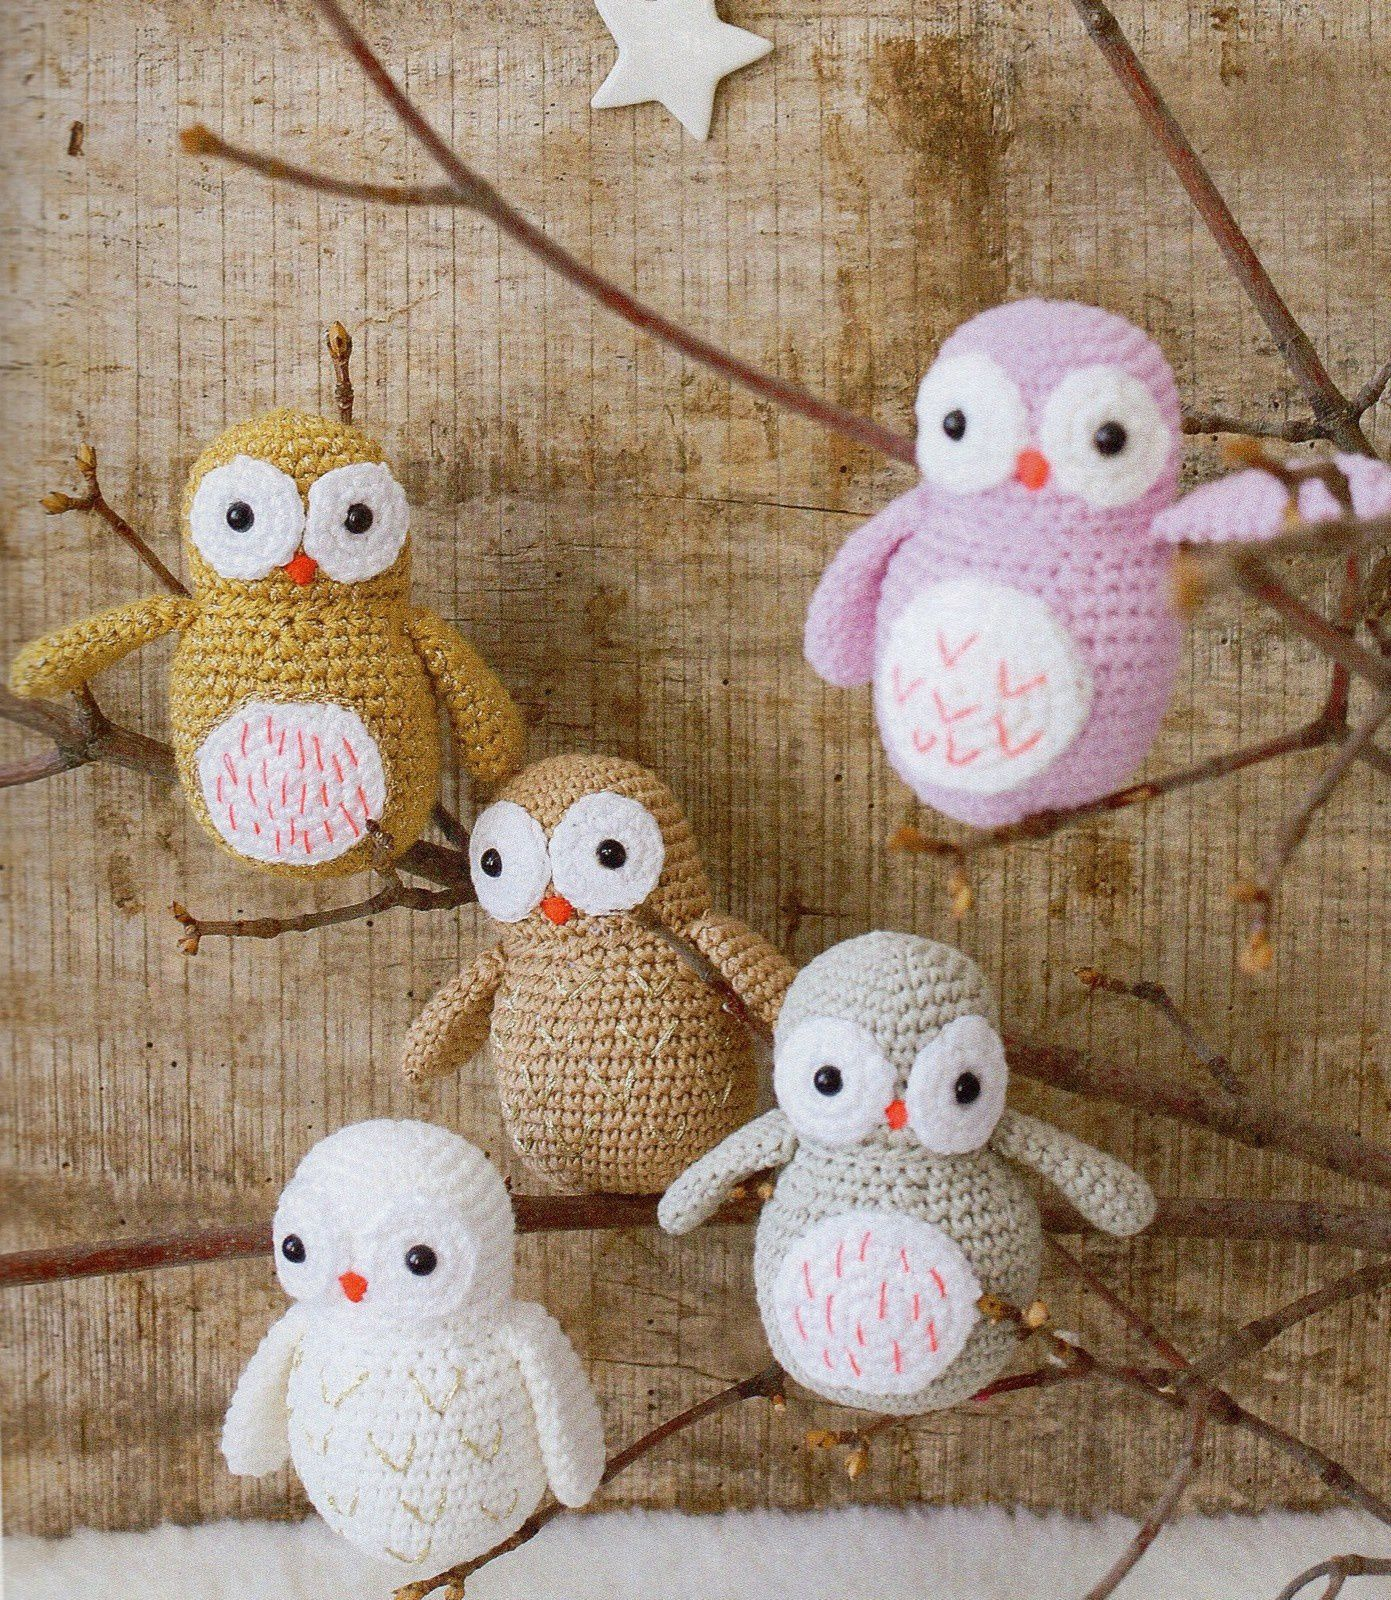 Tutoriel crochet - Chouette